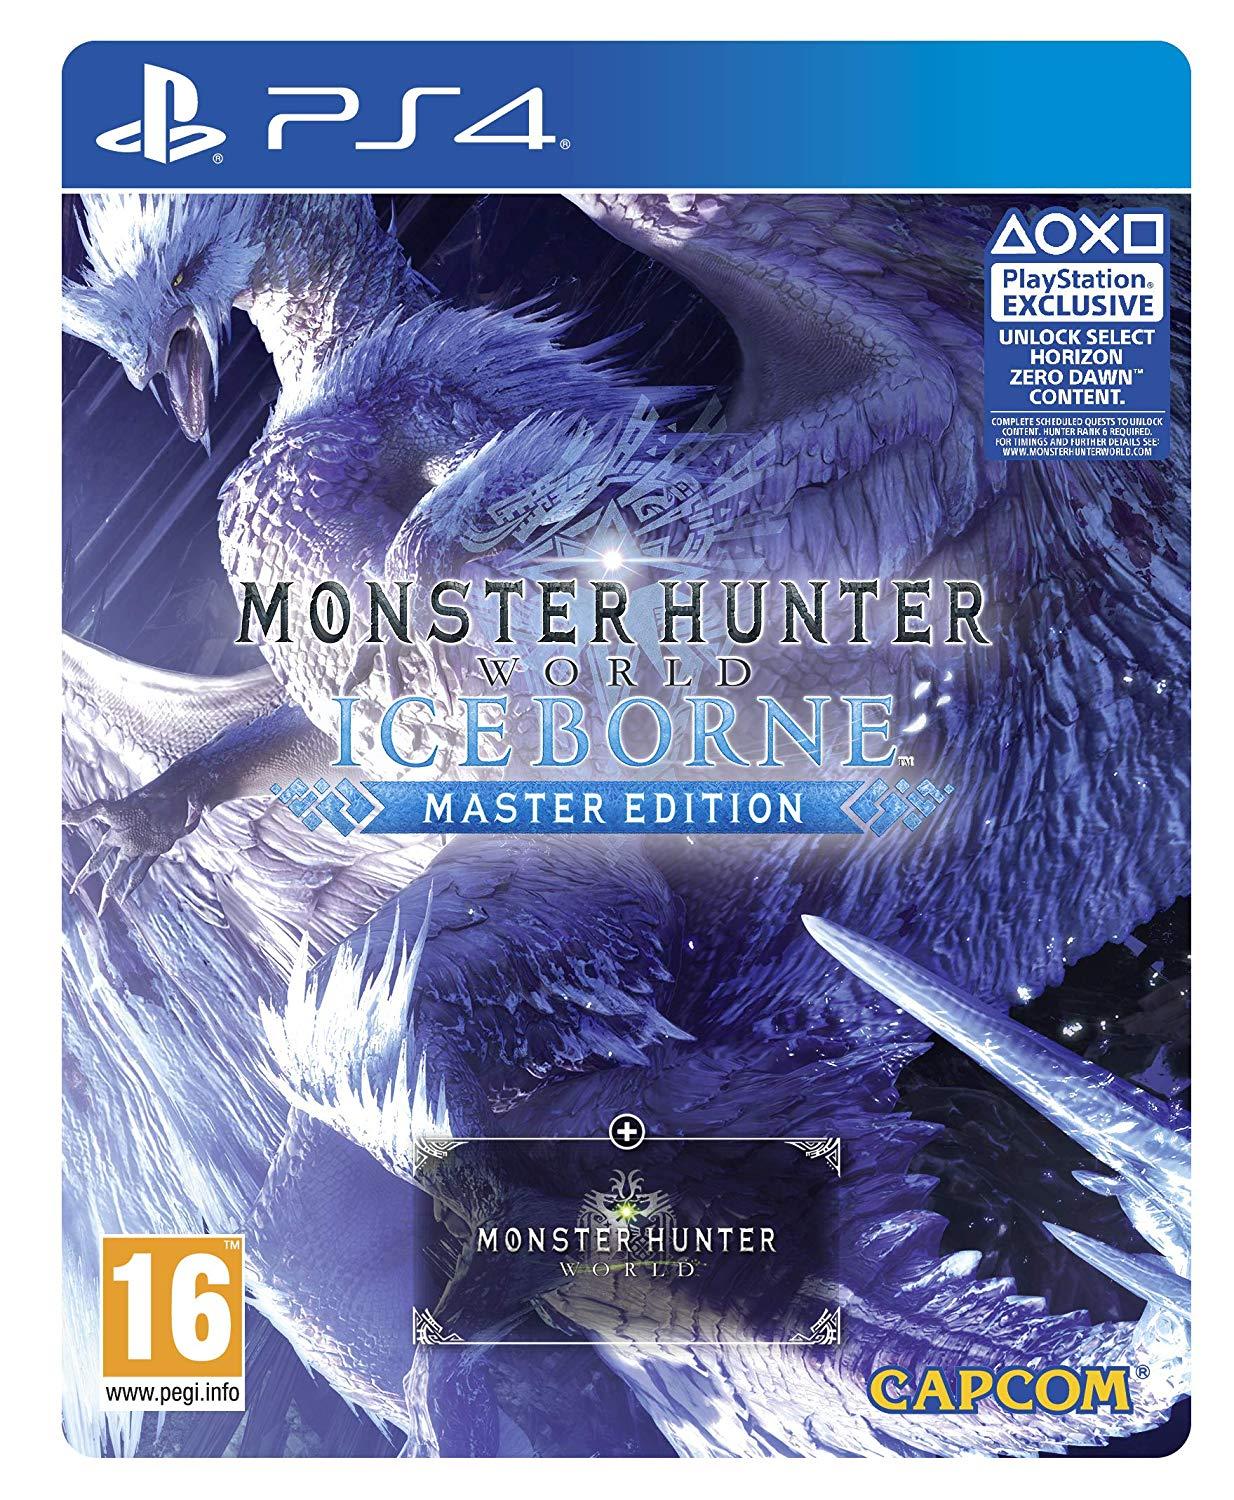 Monster Hunter World Iceborne Master Edition Steelbook Edition